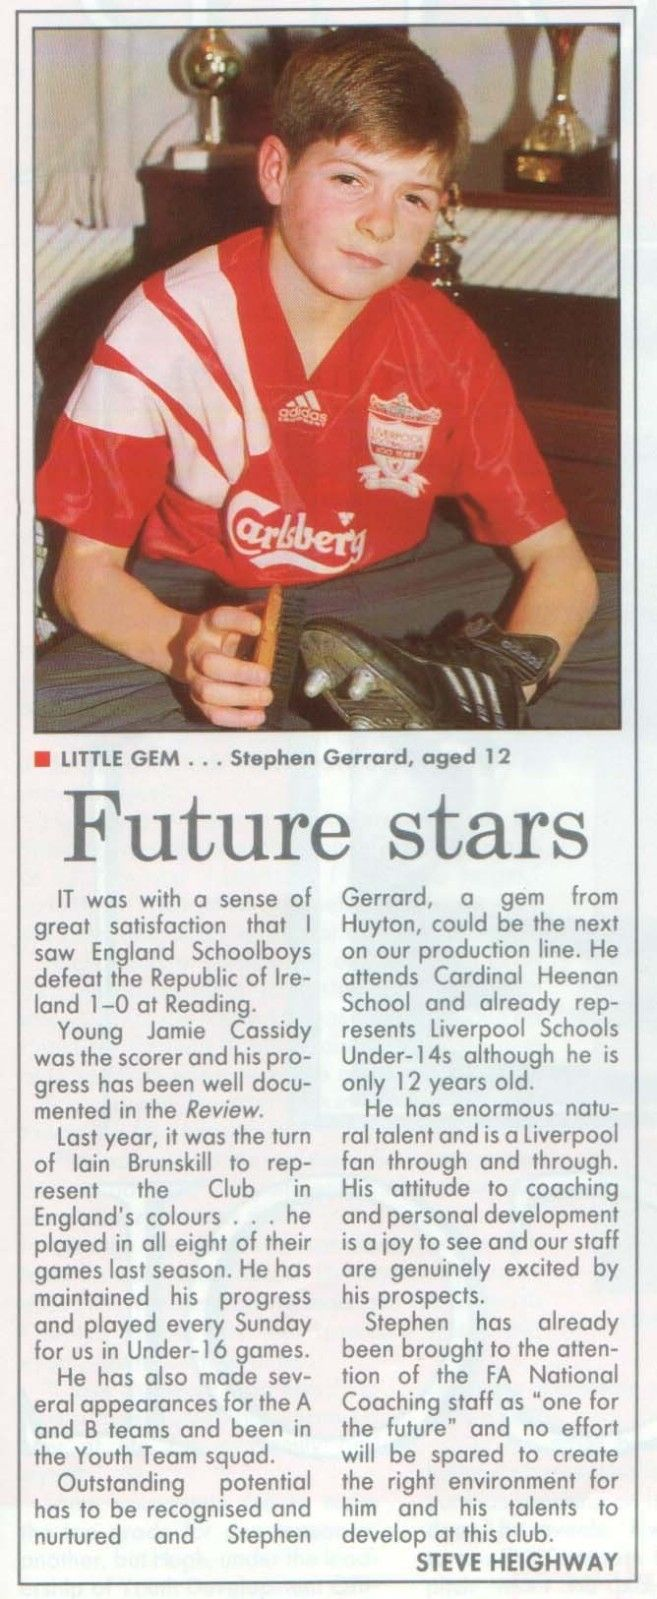 An article from about Steven Gerrard